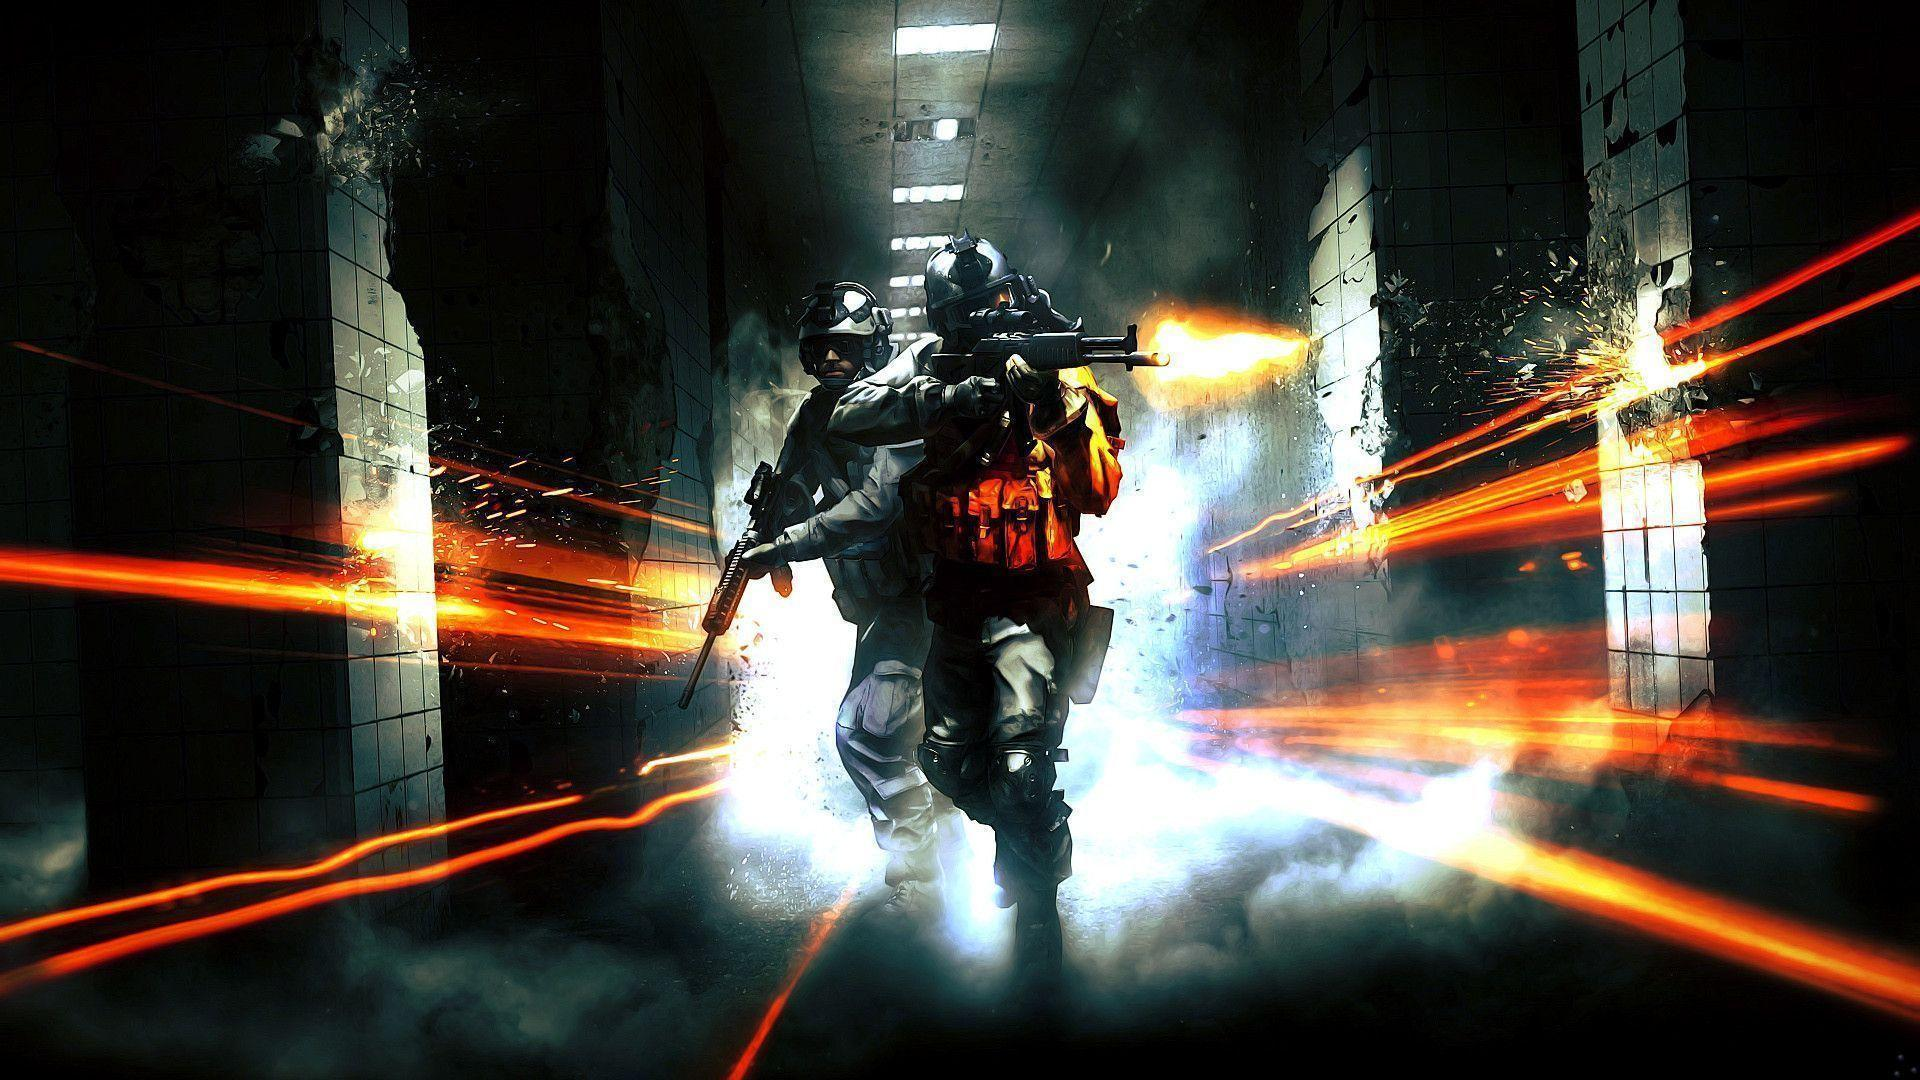 battlefield 3 pc wallpapers - photo #31